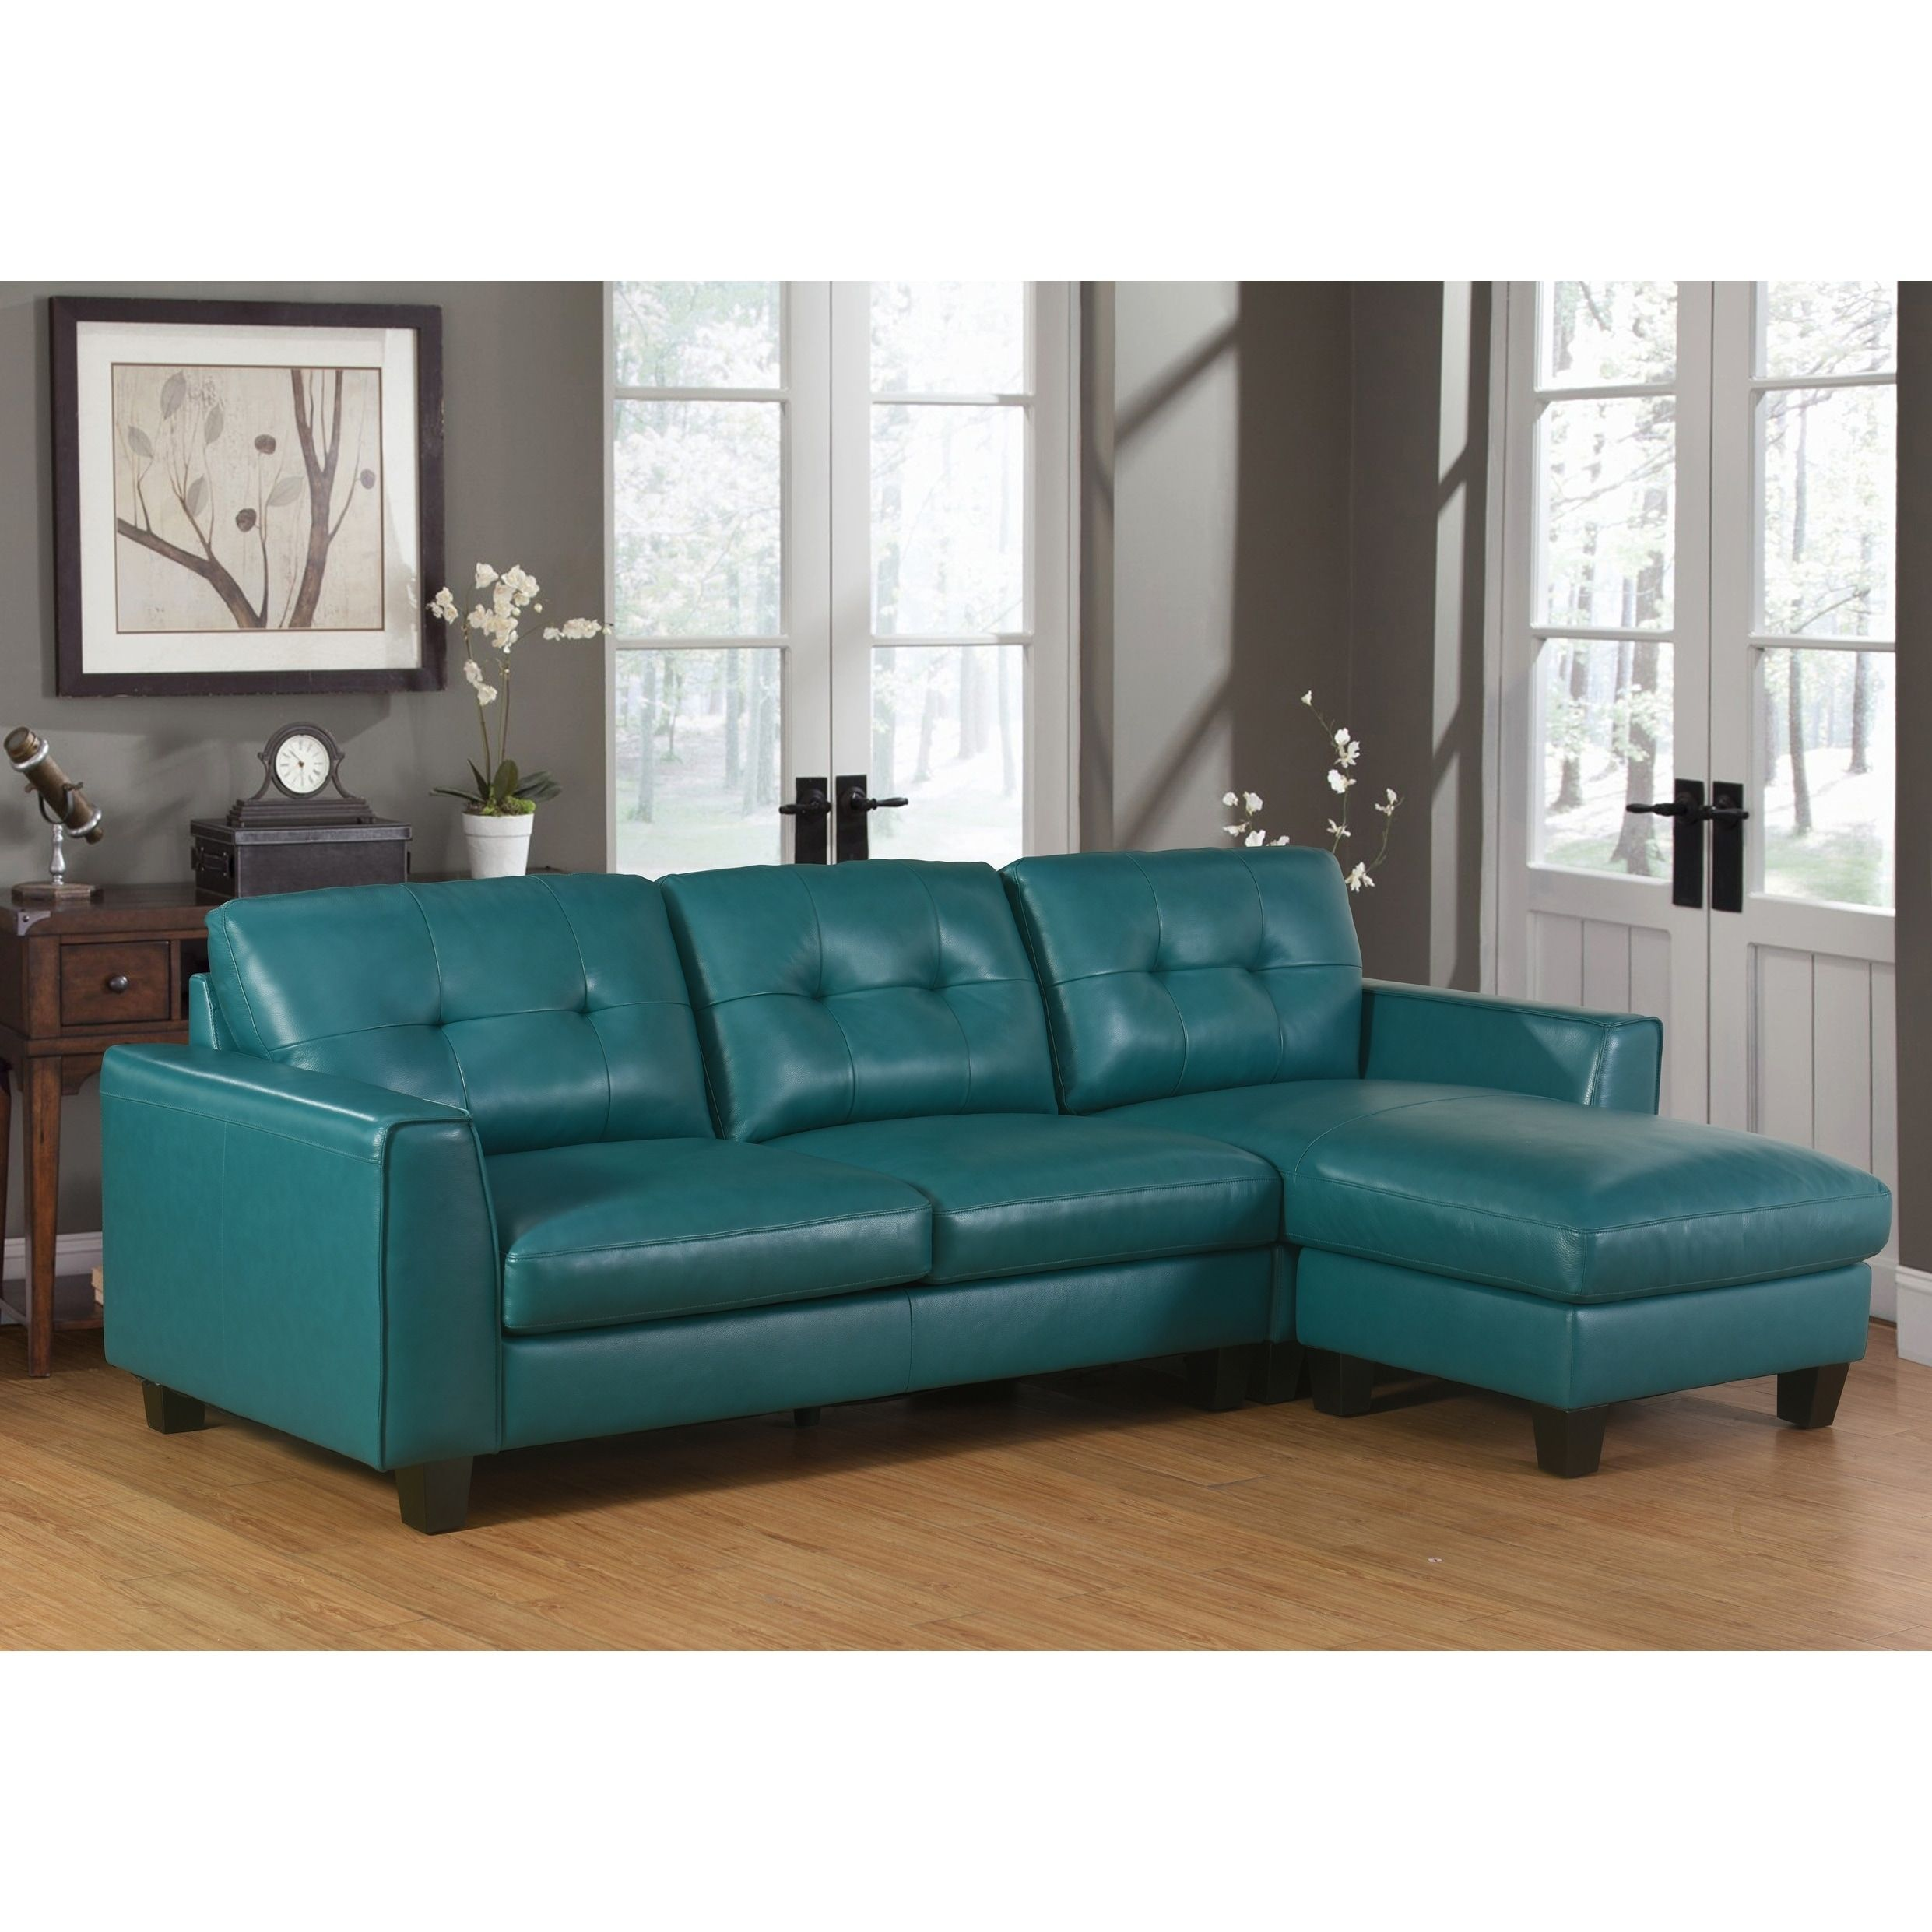 Overstock Com Online Shopping Bedding Furniture Electronics Jewelry Clothing More Sectional Sofa Couch Furniture Best Leather Sofa